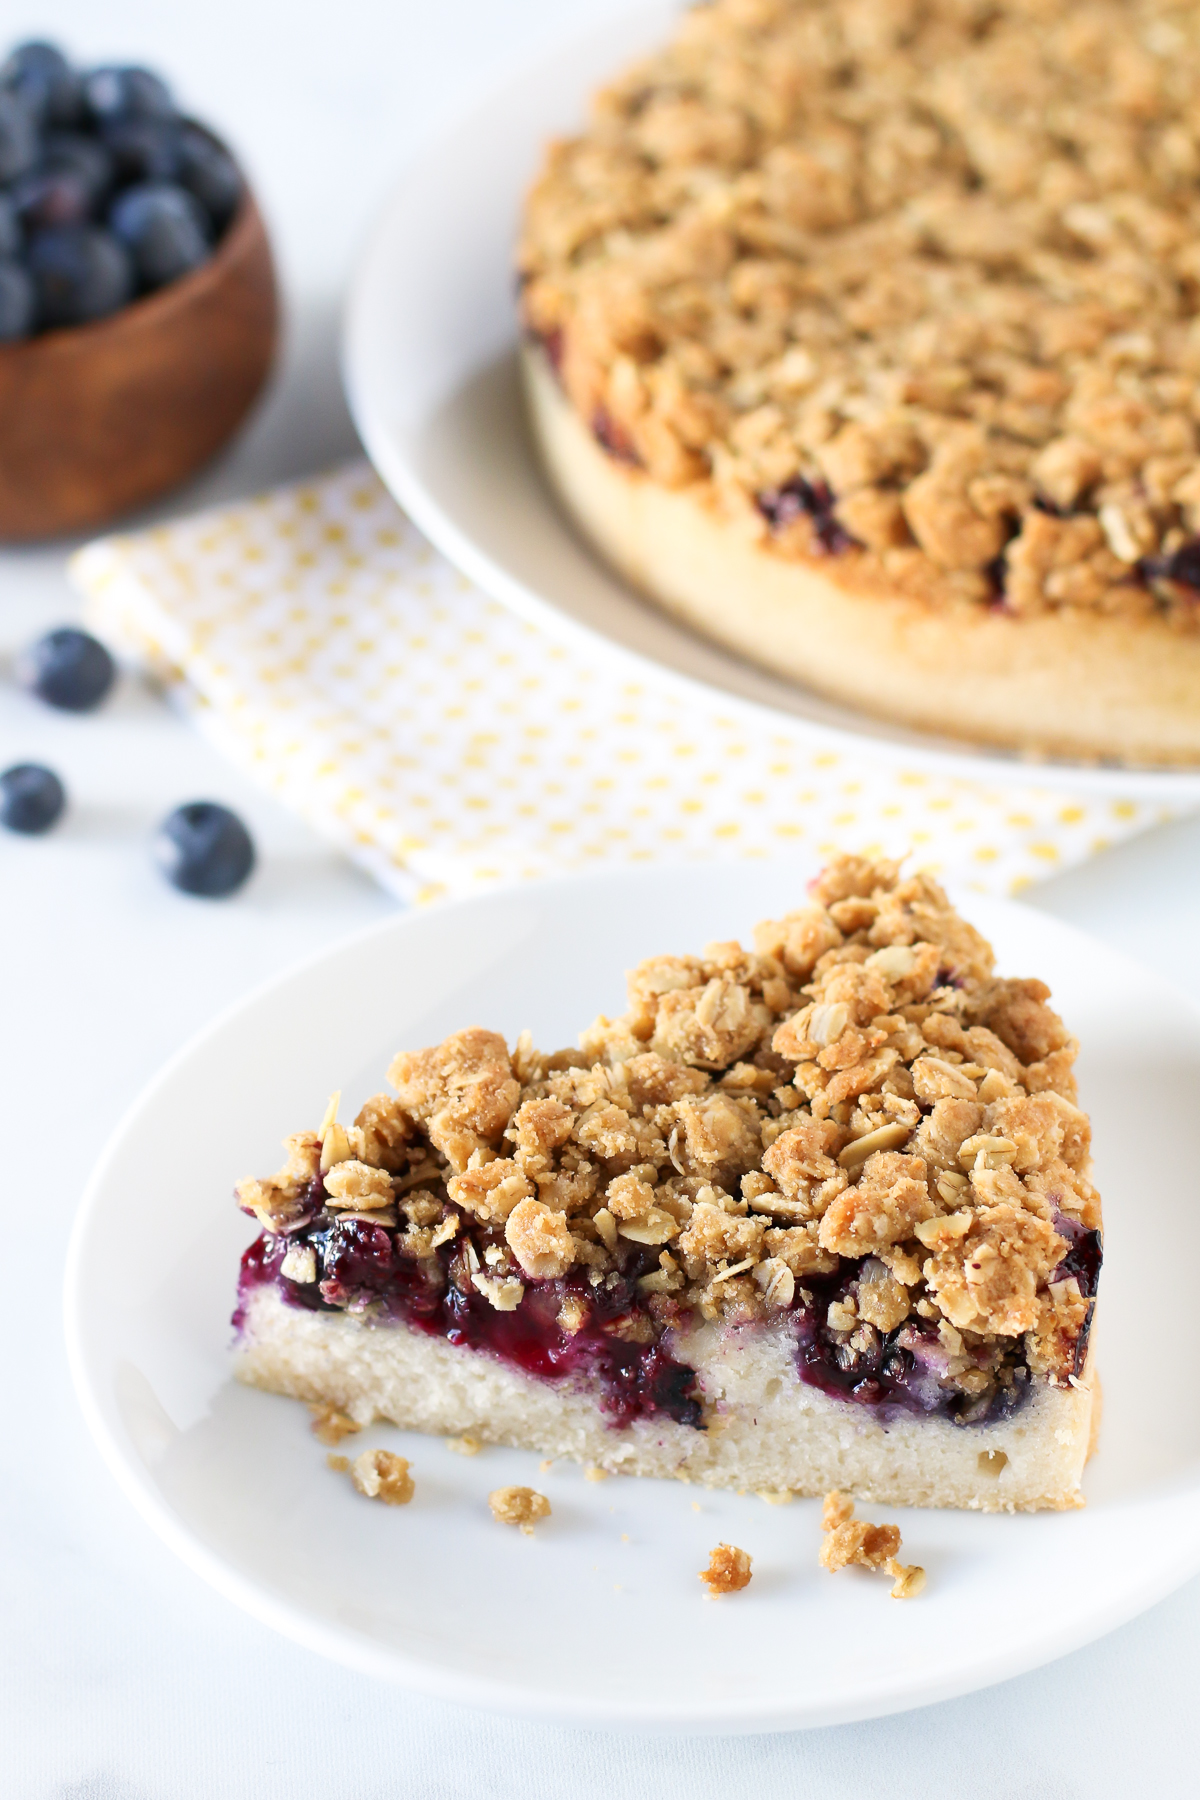 Gluten Free Blueberry Oatmeal Coffee Cake